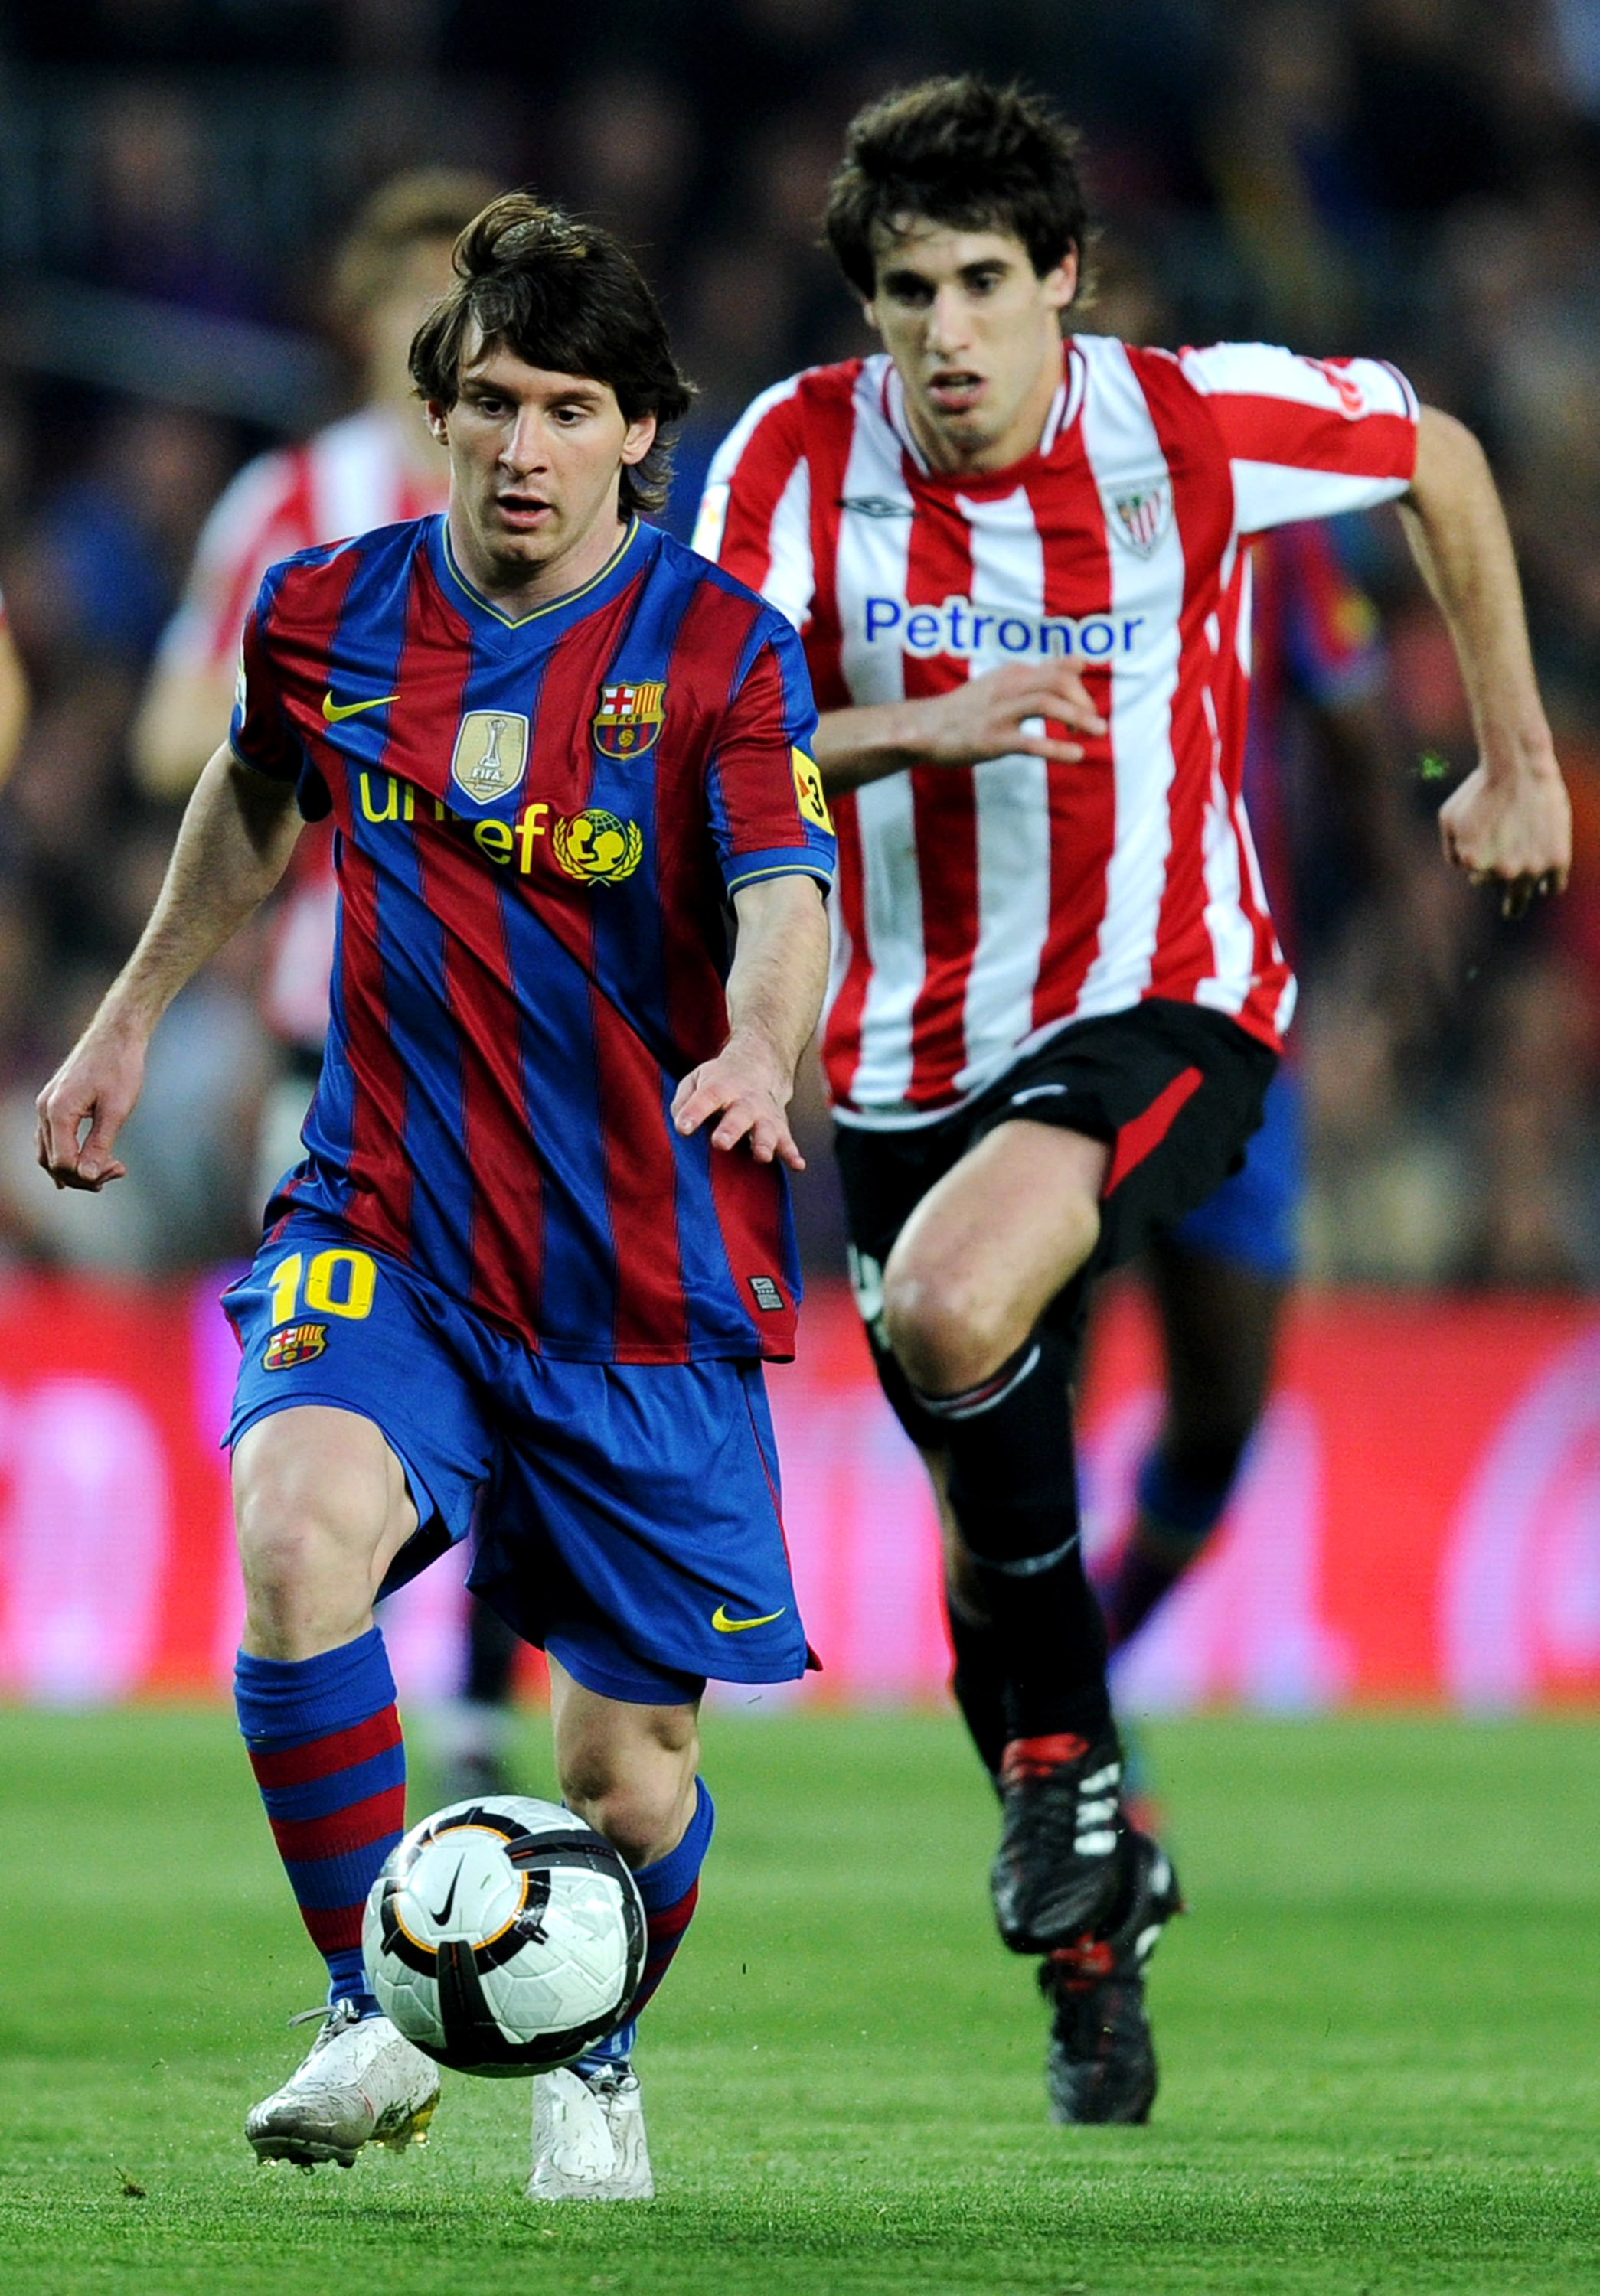 BARCELONA, SPAIN - APRIL 03:  Lionel Messi (L) of FC Barcelona runs for the ball pursued by Javi Martinez of Athletic Bilbao during the La Liga match between Barcelona and Athletic Bilbao at the Camp Nou Stadium on April 3, 2010 in Barcelona, Spain. Barce